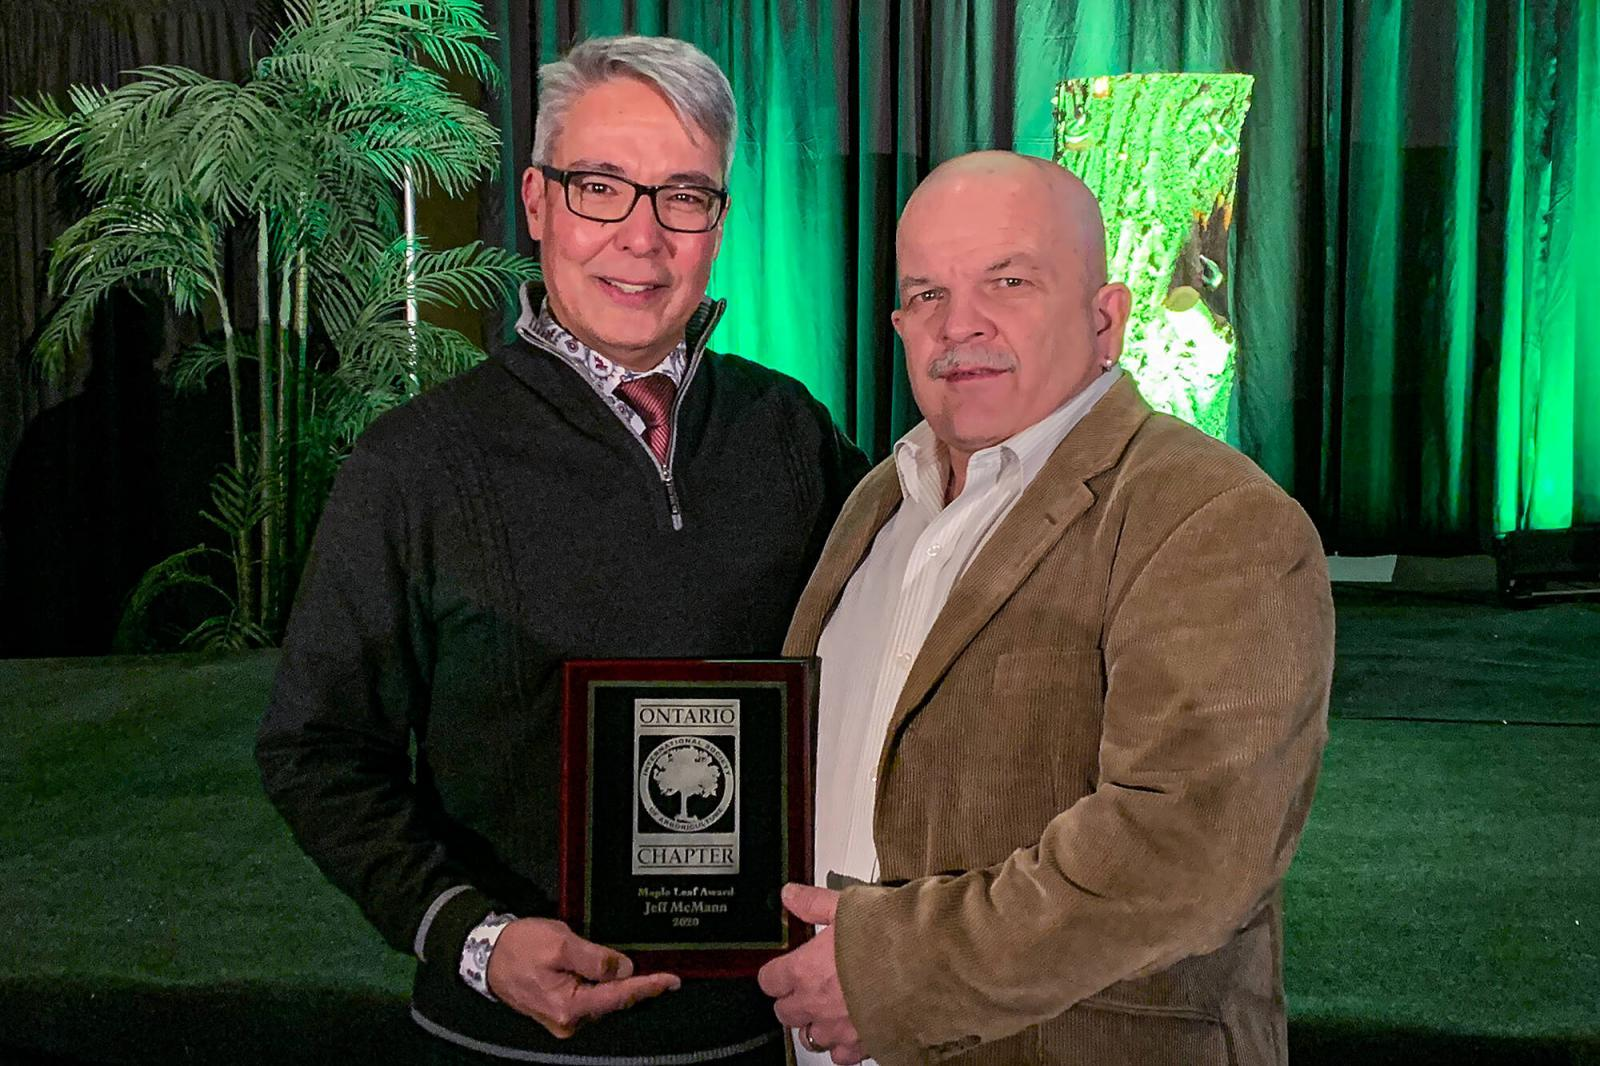 Jeff McMann (left) accepts his award from John Stewart, Past President, ISA Ontario.